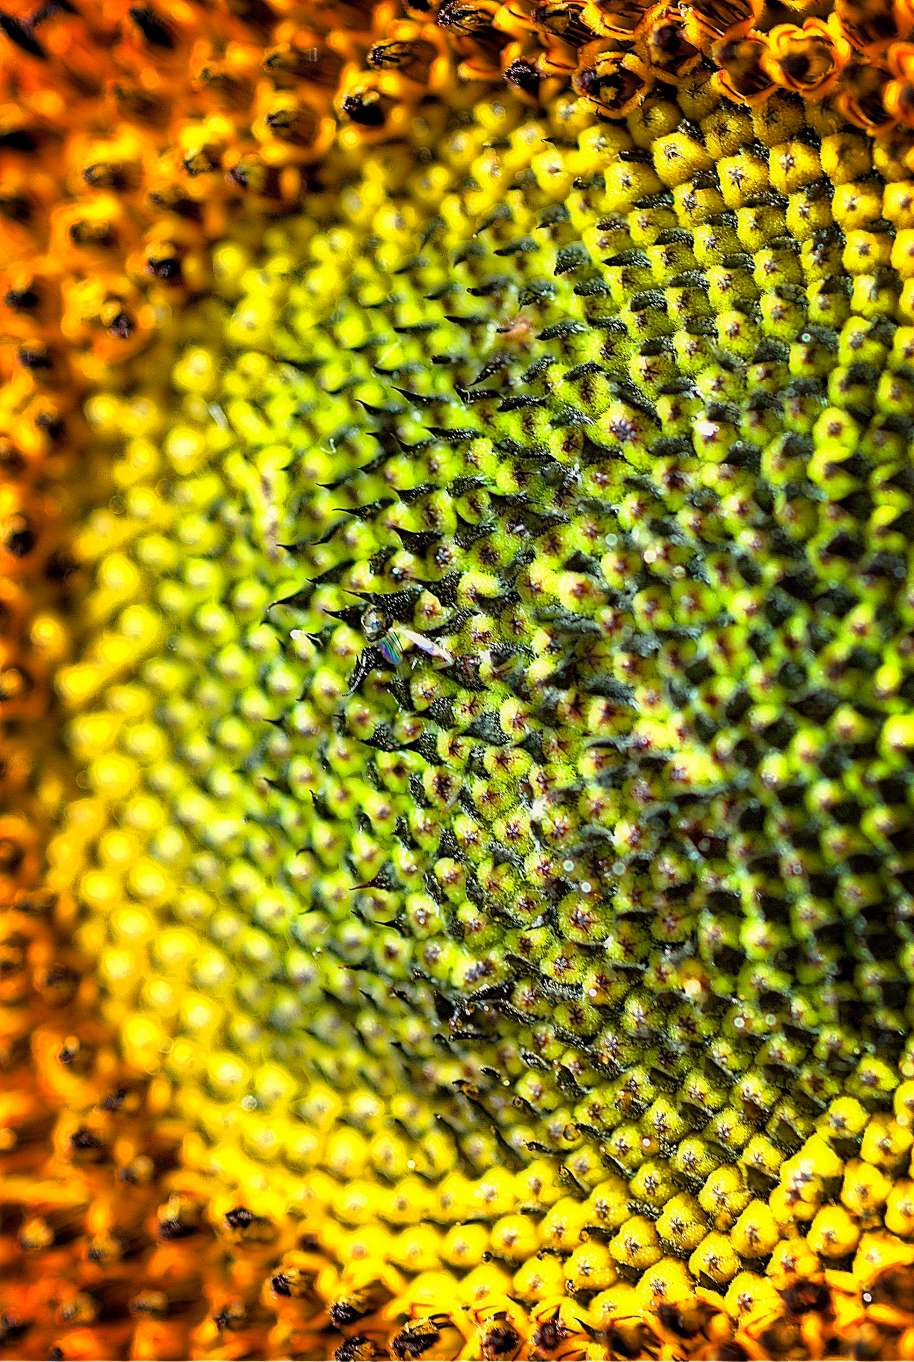 Details of the bright yellow picture.